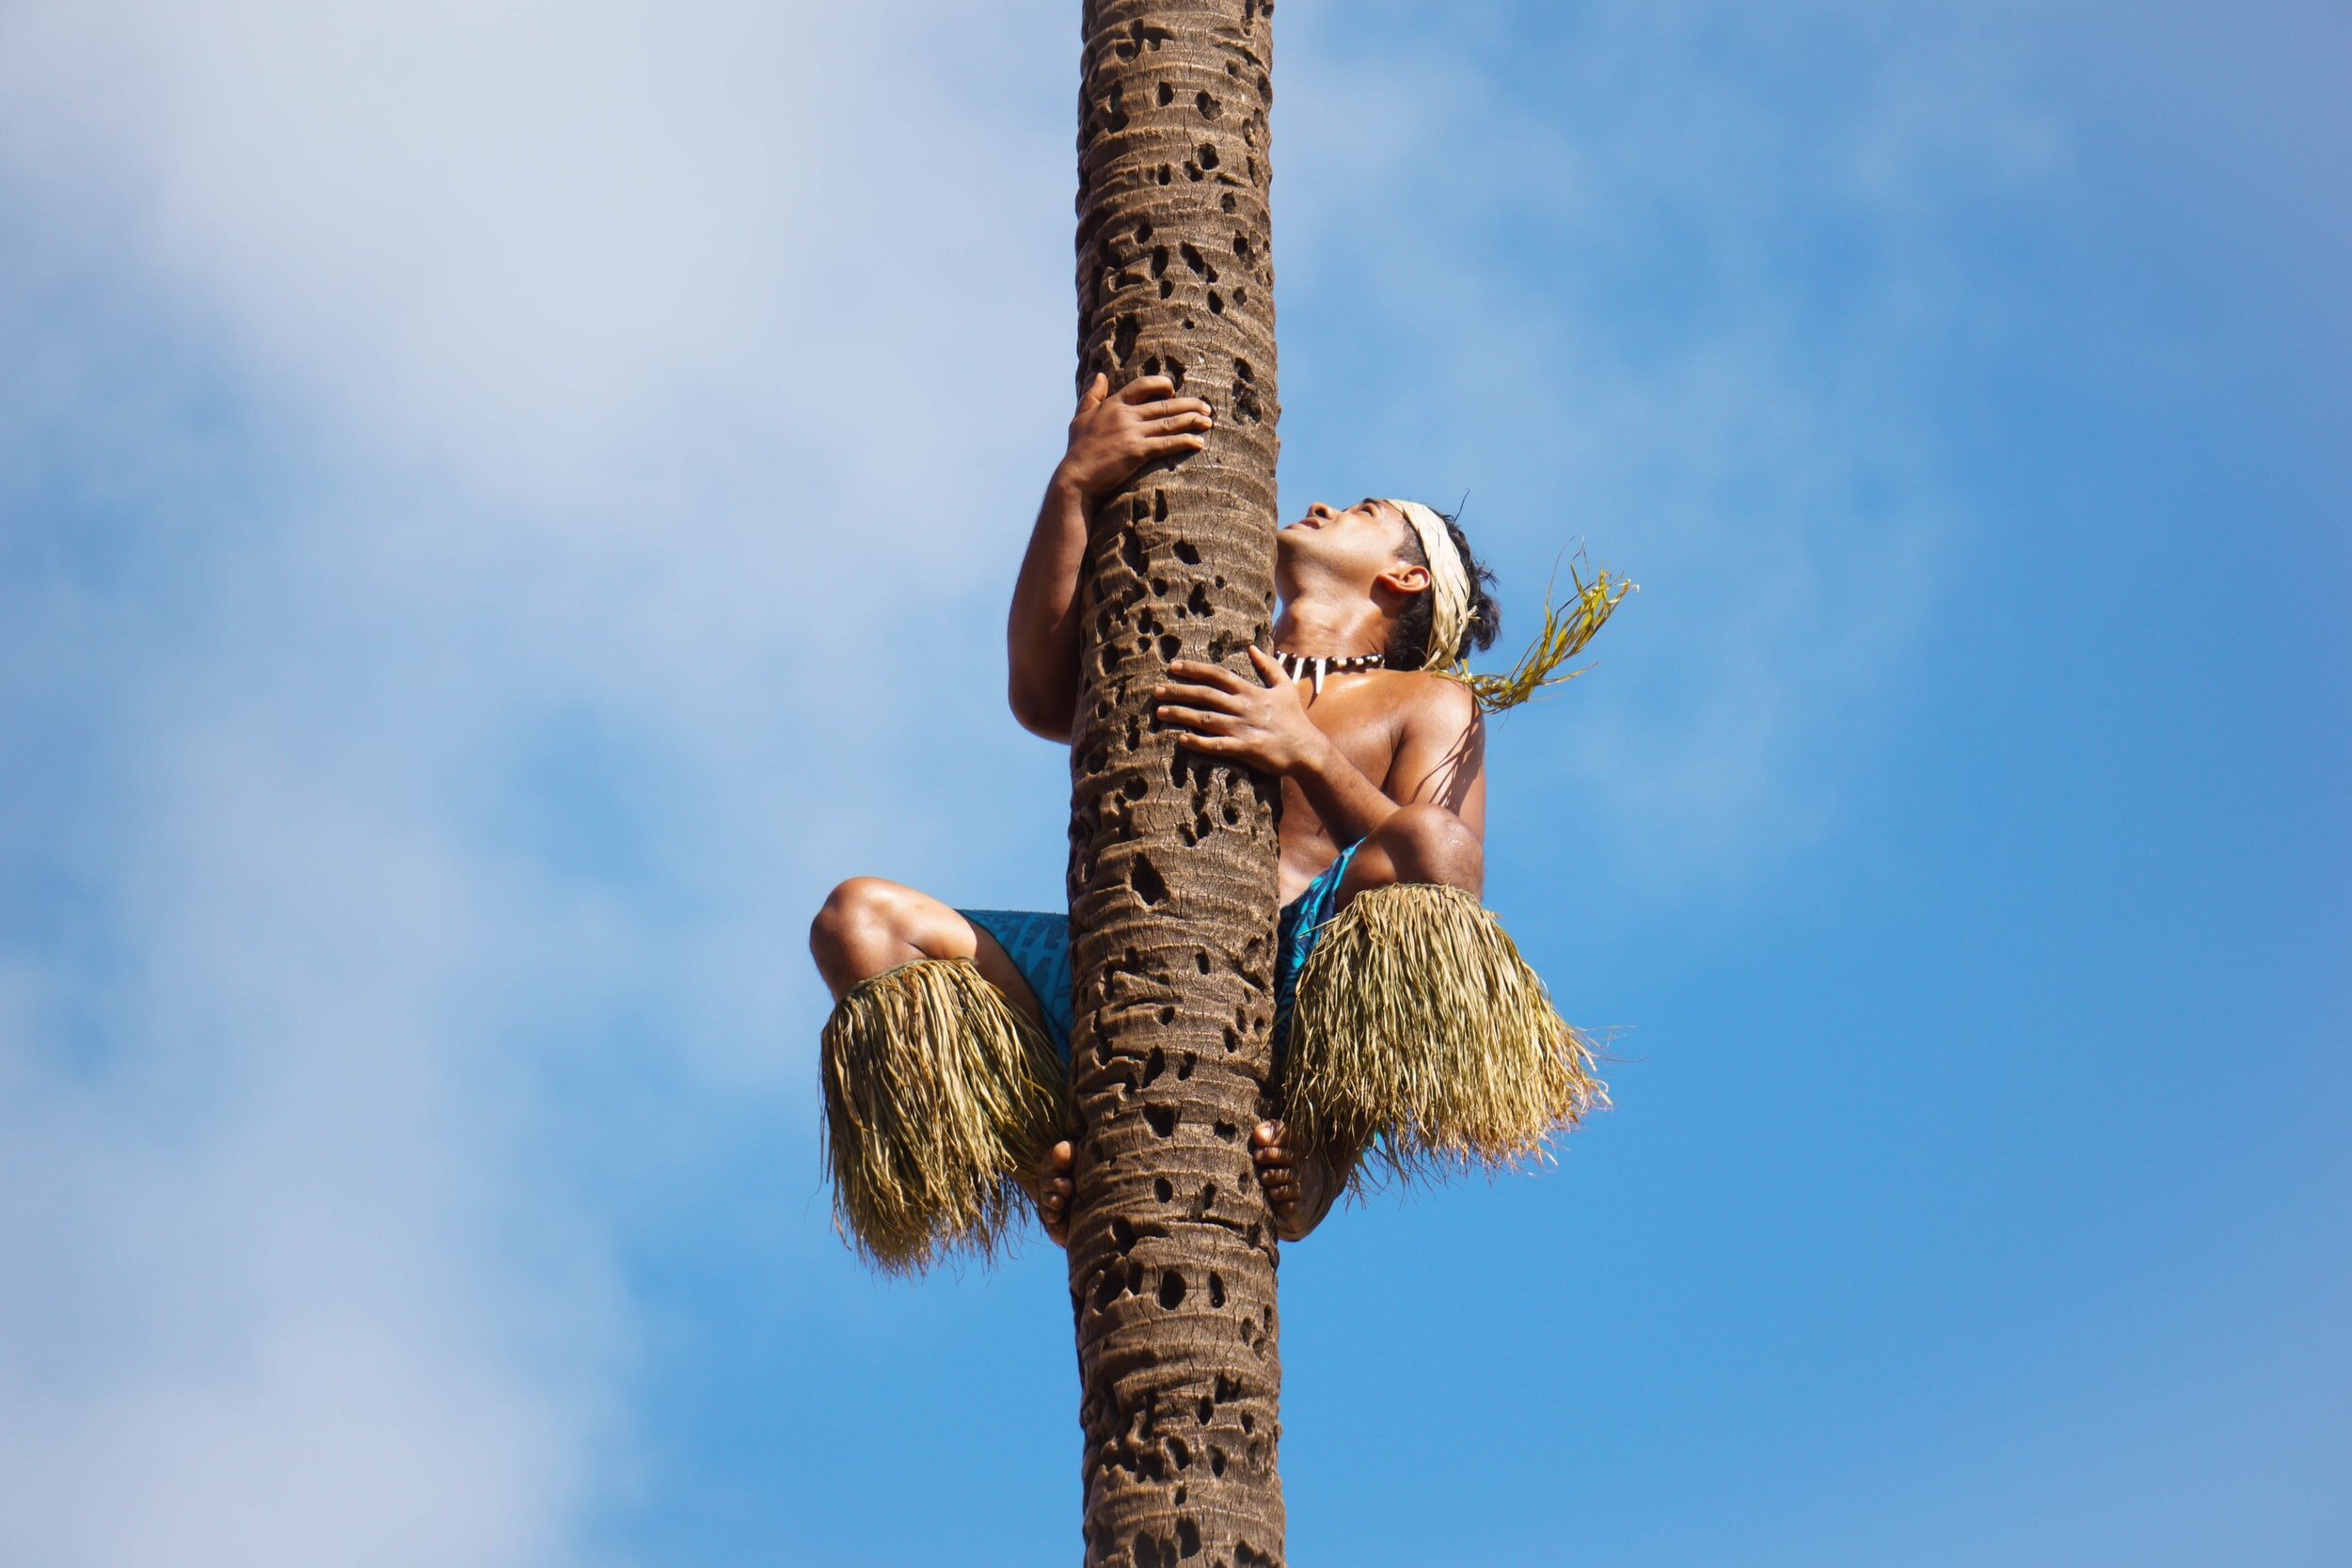 All you need to know about Samoa - The good, the bad, and the ugly -